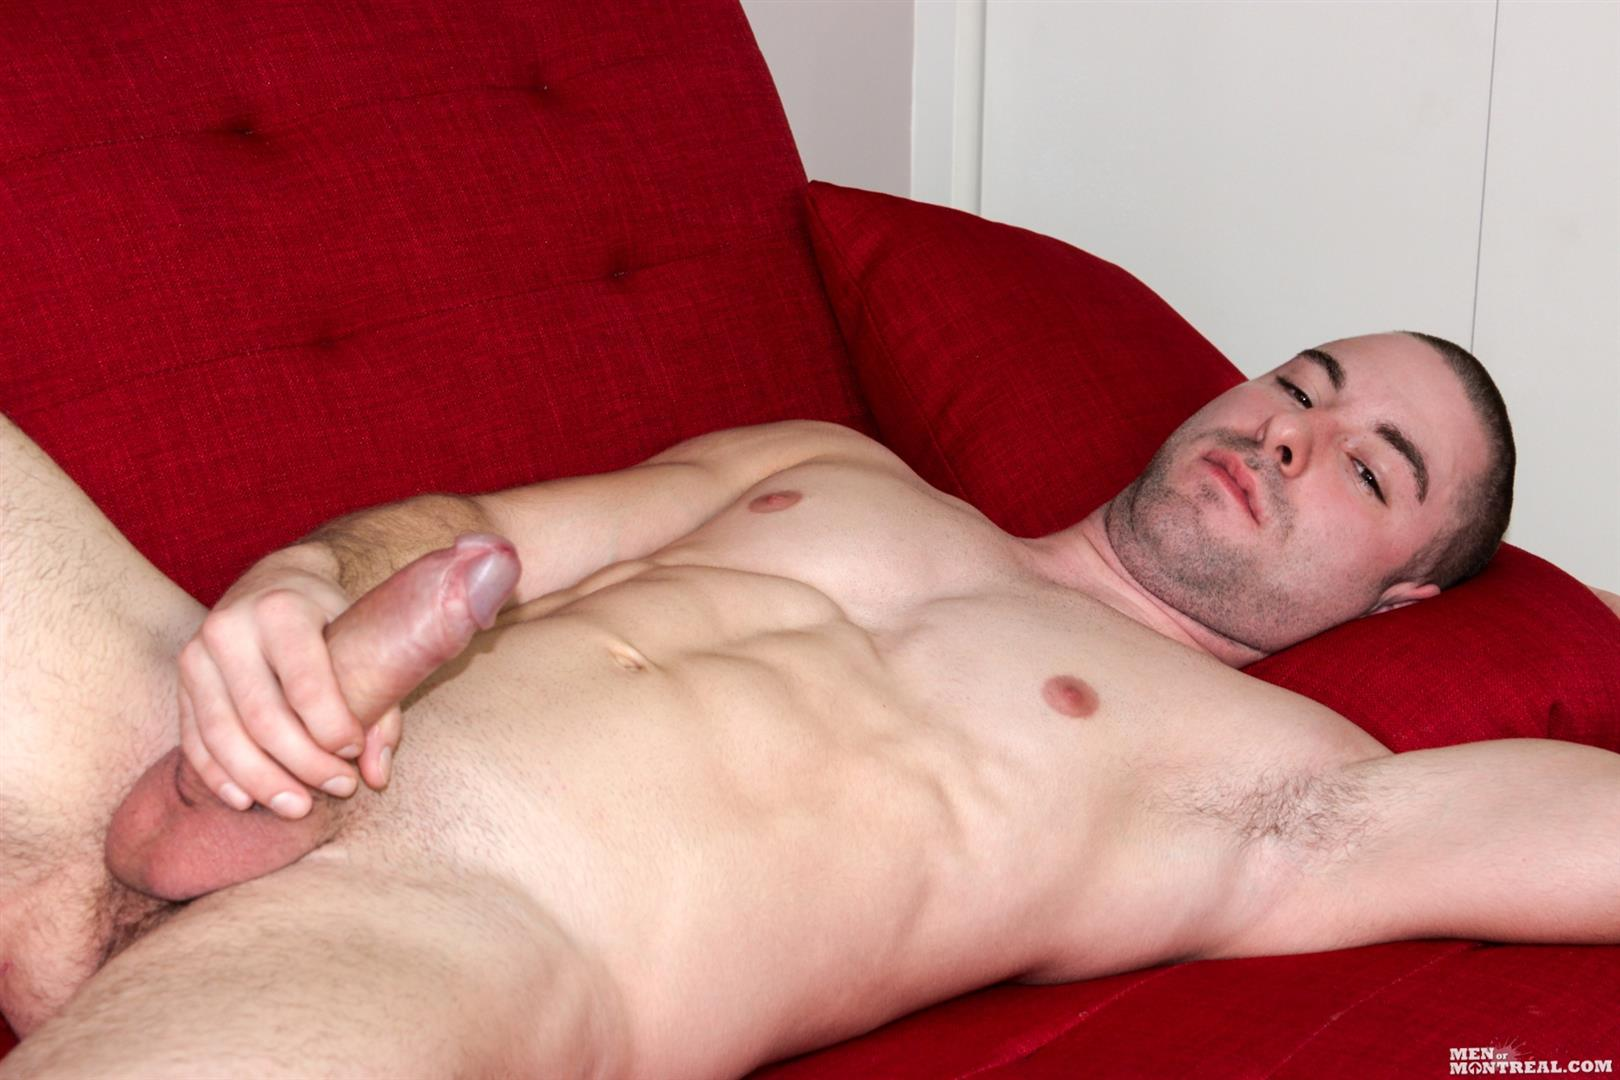 Men-of-Montreal-Cedrick-Dupuy-Hung-Muscle-Guy-With-Big-Uncut-Cock-Amateur-Gay-Porn-11 Canadian Hunk With A Big Uncut Cock Auditions For Gay Porn